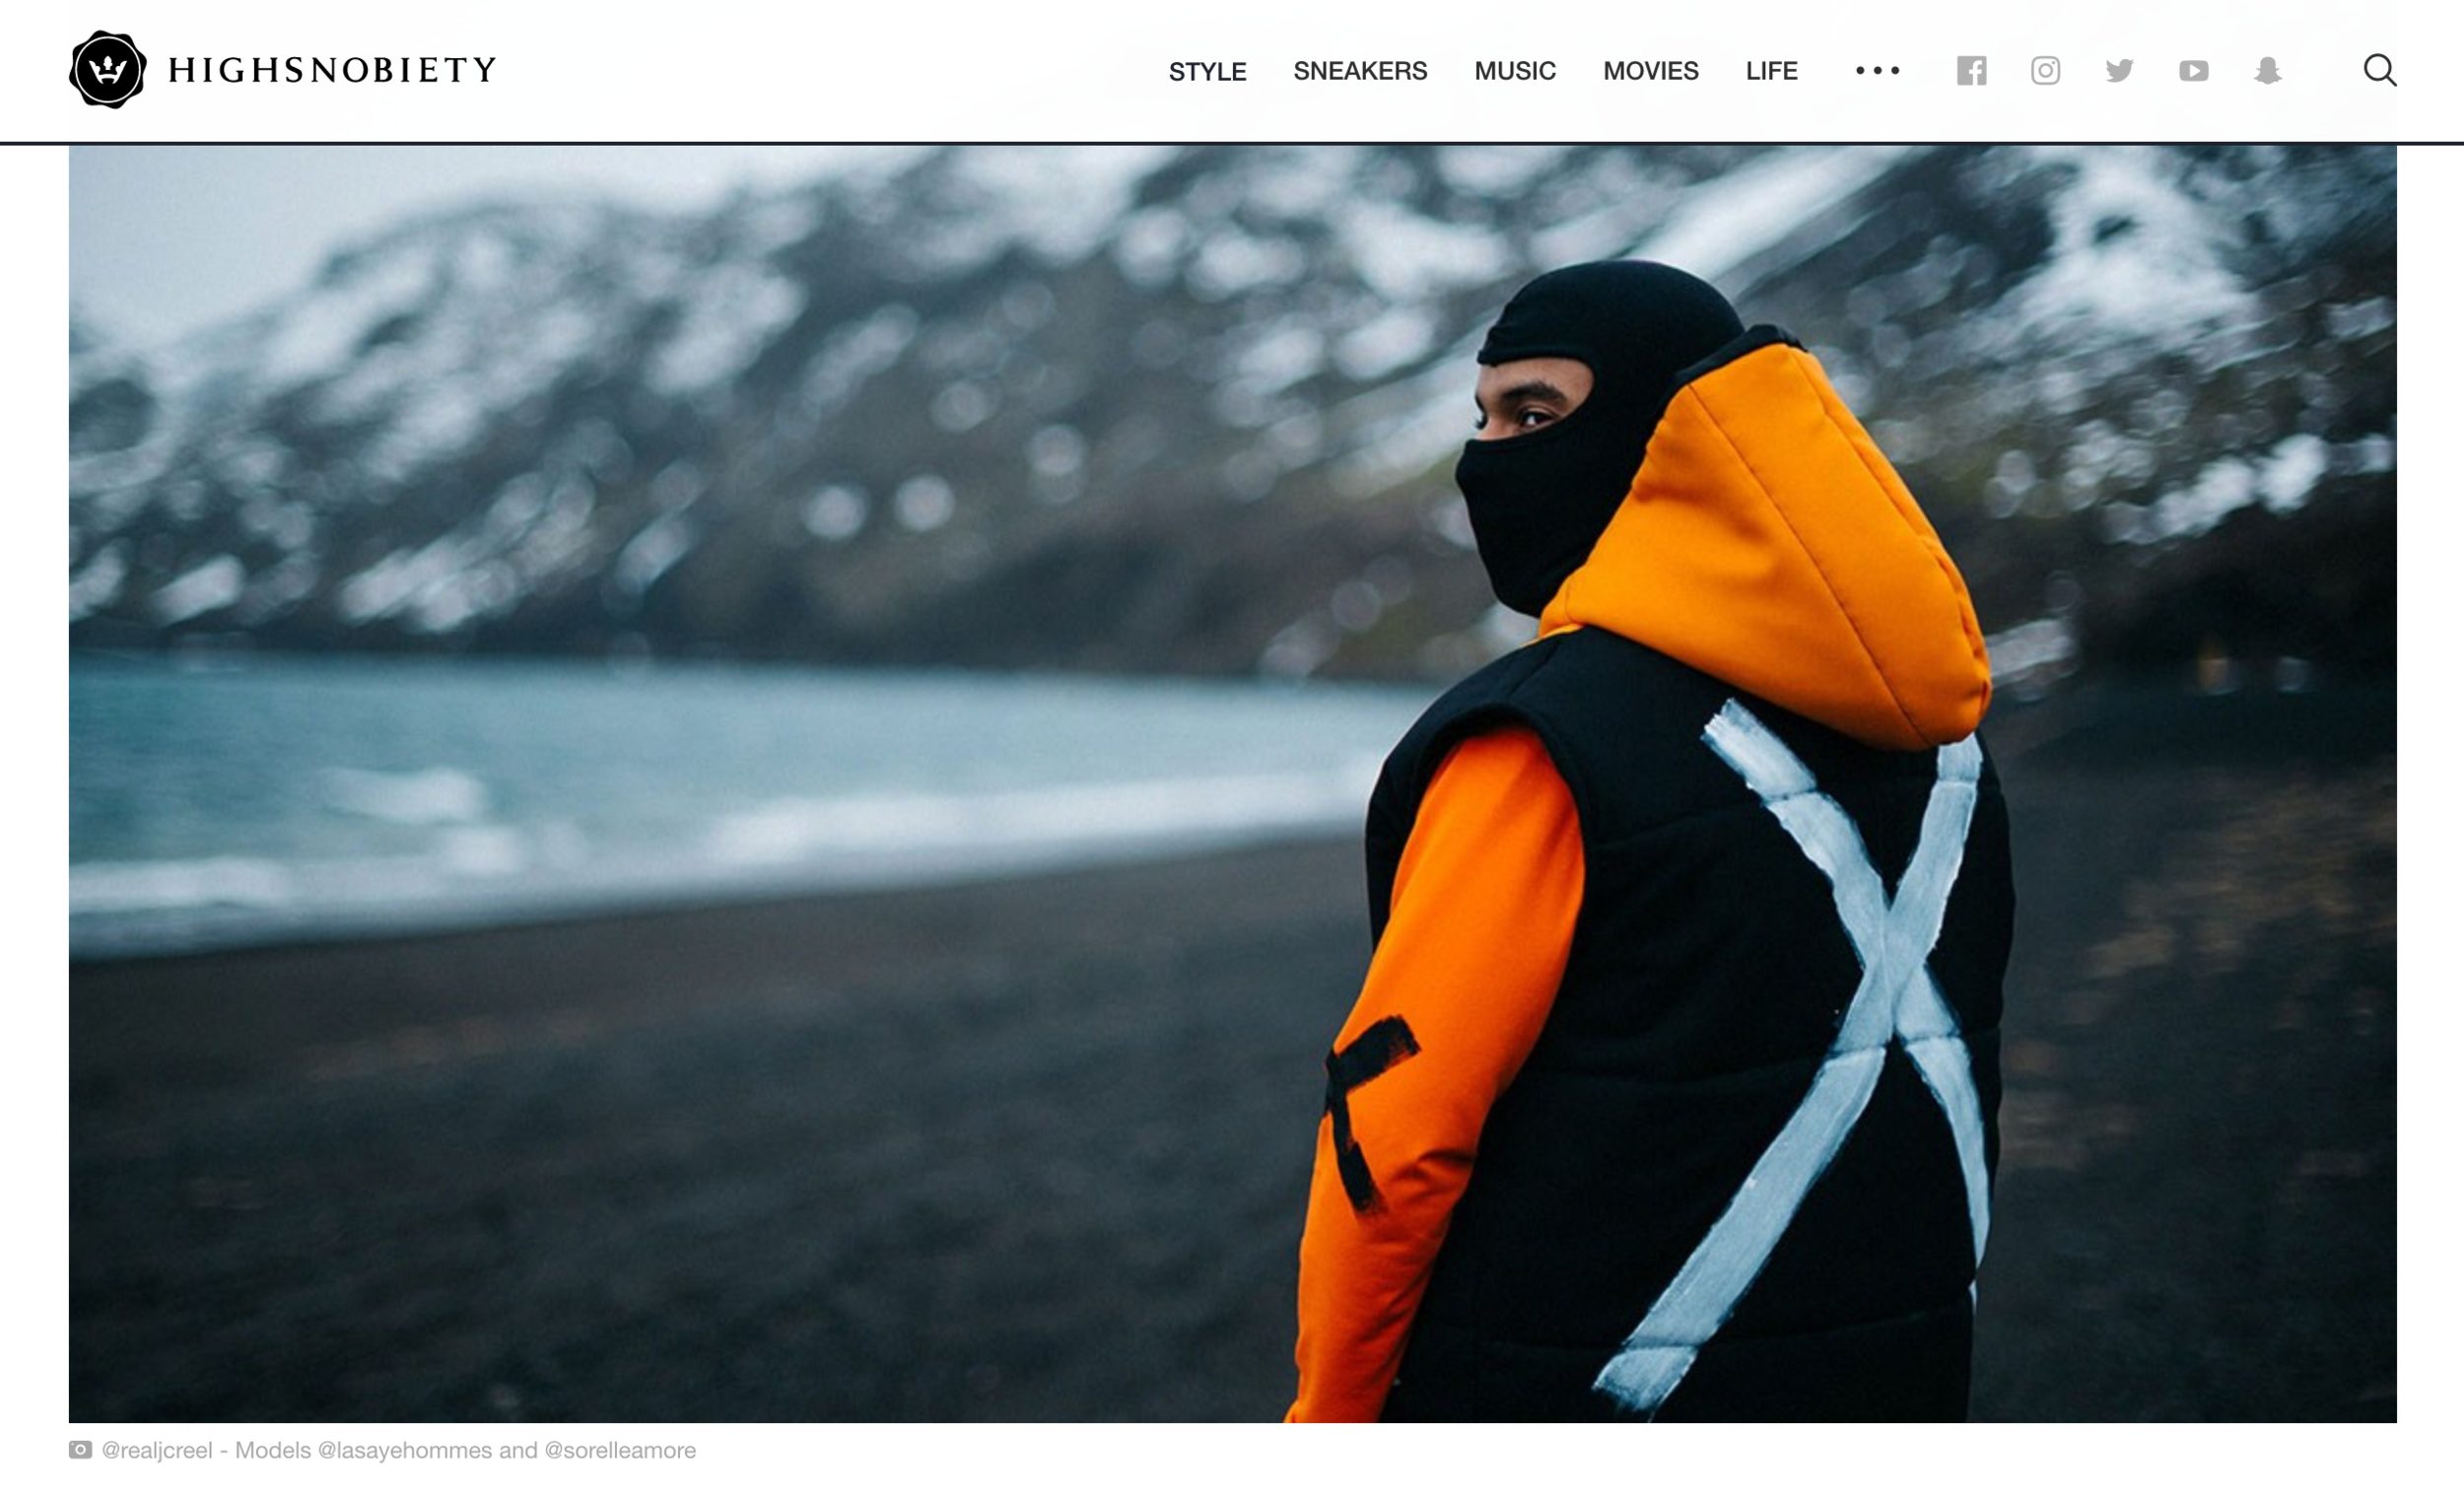 Click here   to read more on High Snobiety about Iceland's Streetwear Scene with photos by PoP.